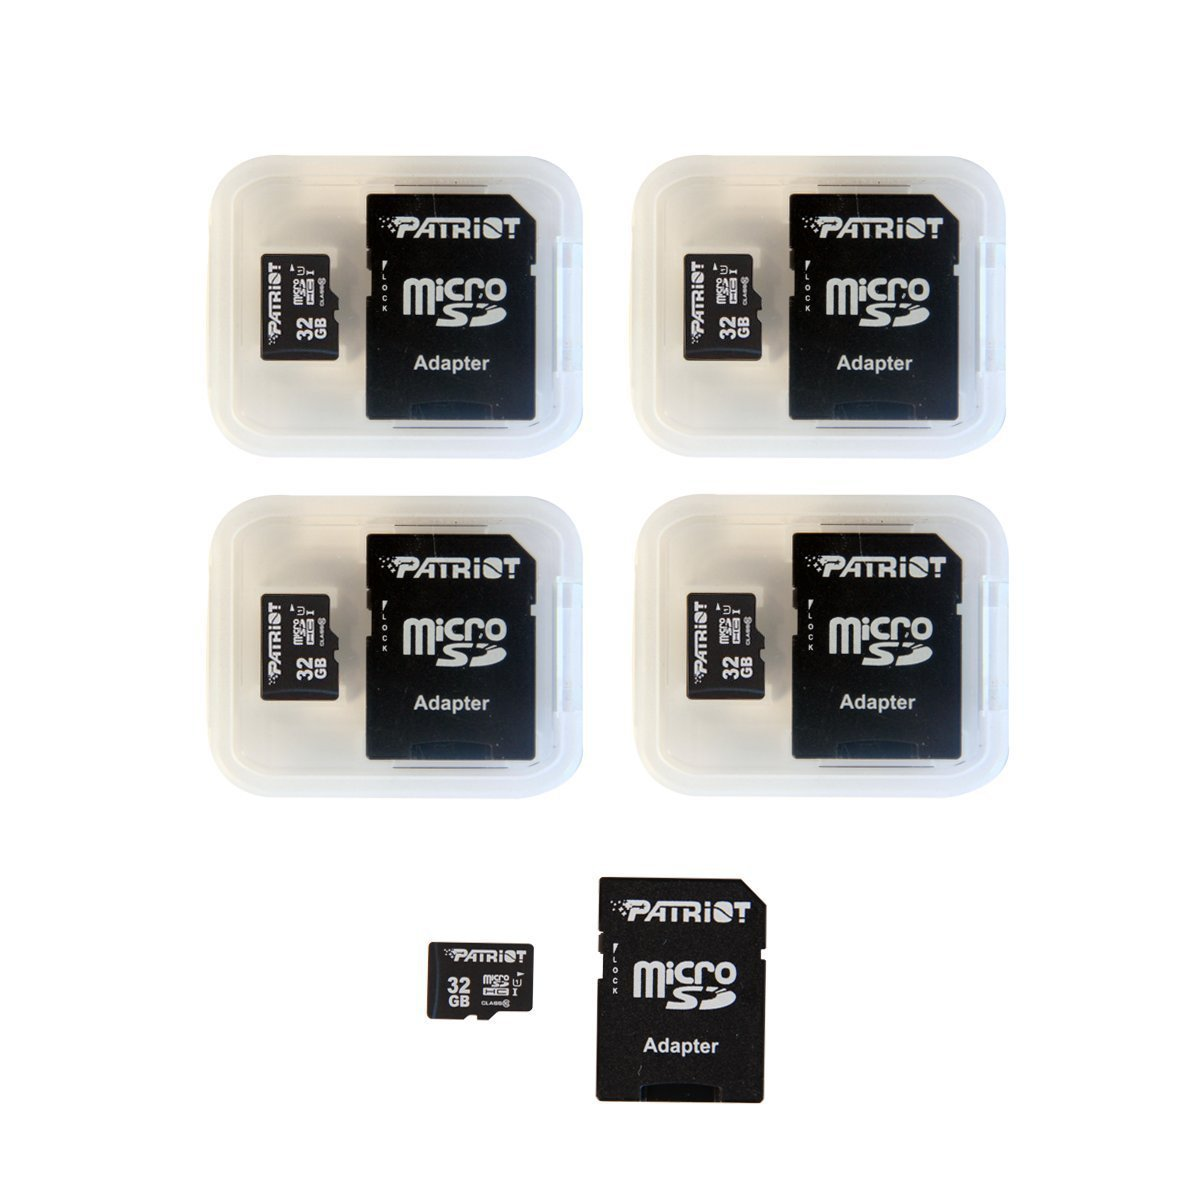 TALLA 32GB 5-Pack. Patriot LX Series 16GB Micro SDHC - Class 10 UHS-I - 5 Pack (PSF16GMCSDHC5PK)